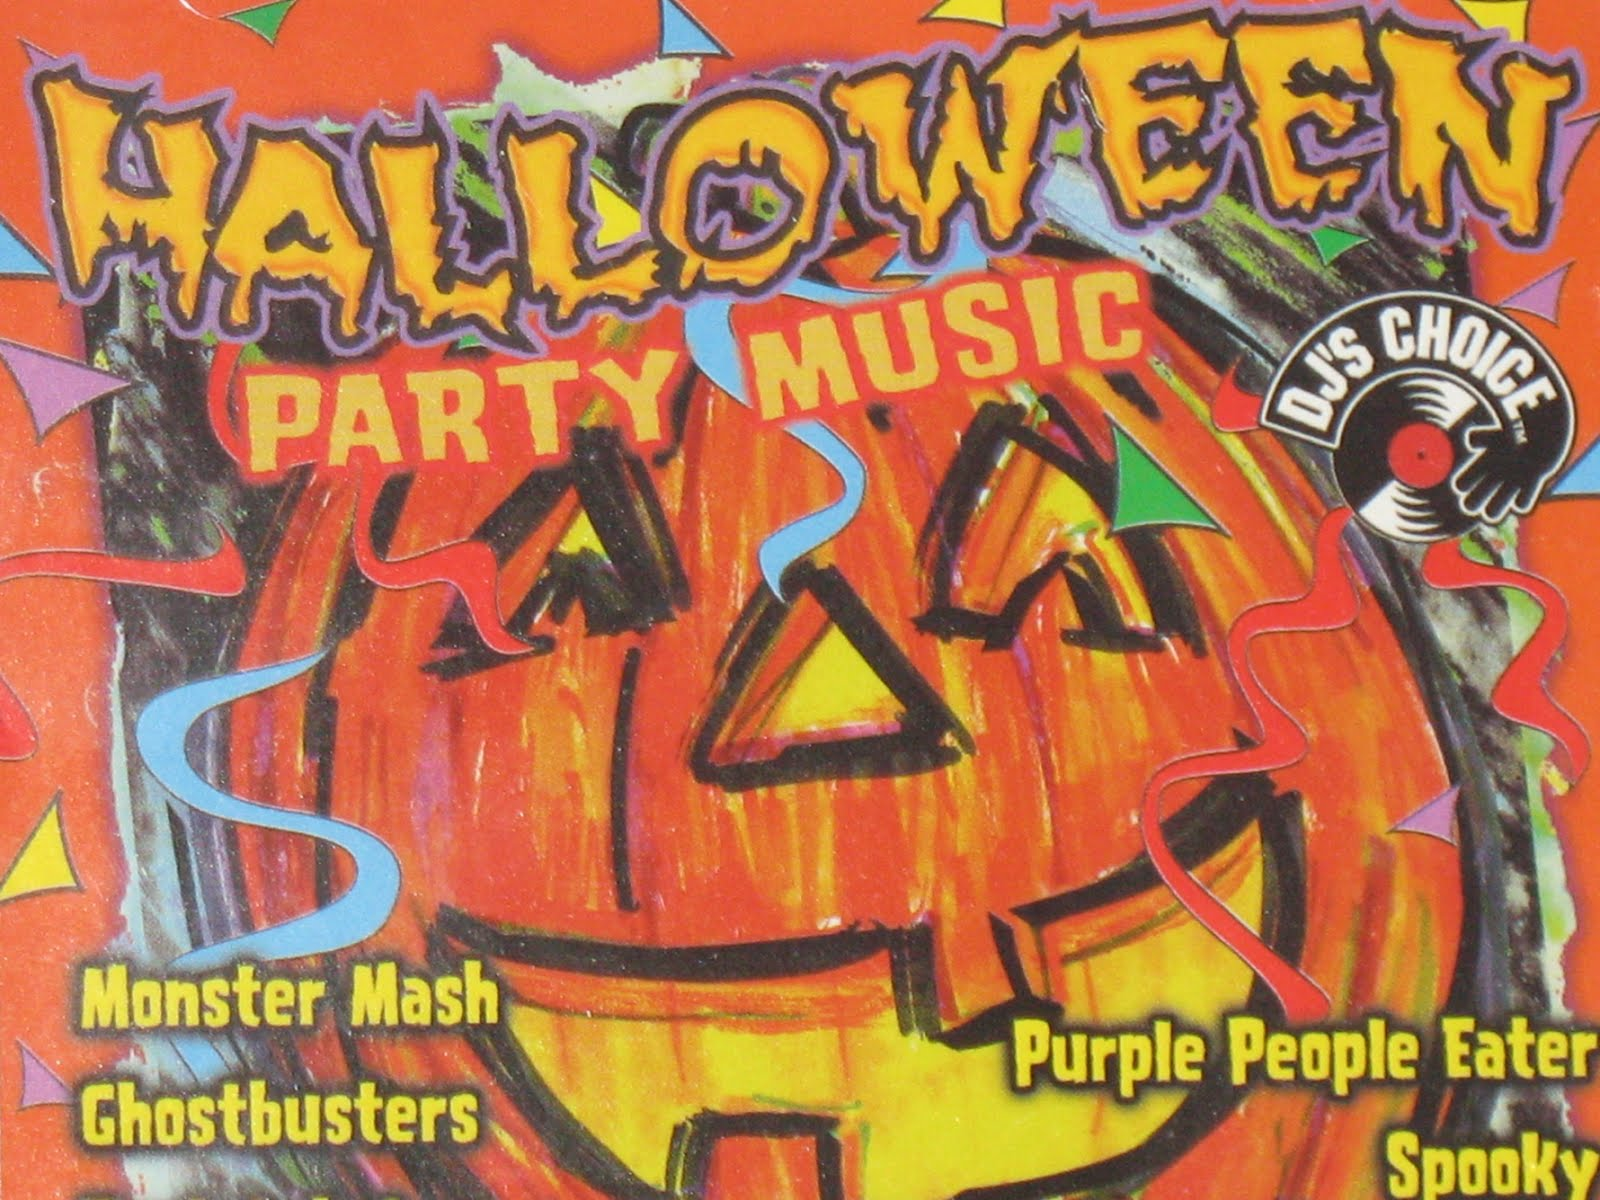 Michael Doherty's Music Log: Halloween Party Music CD Review